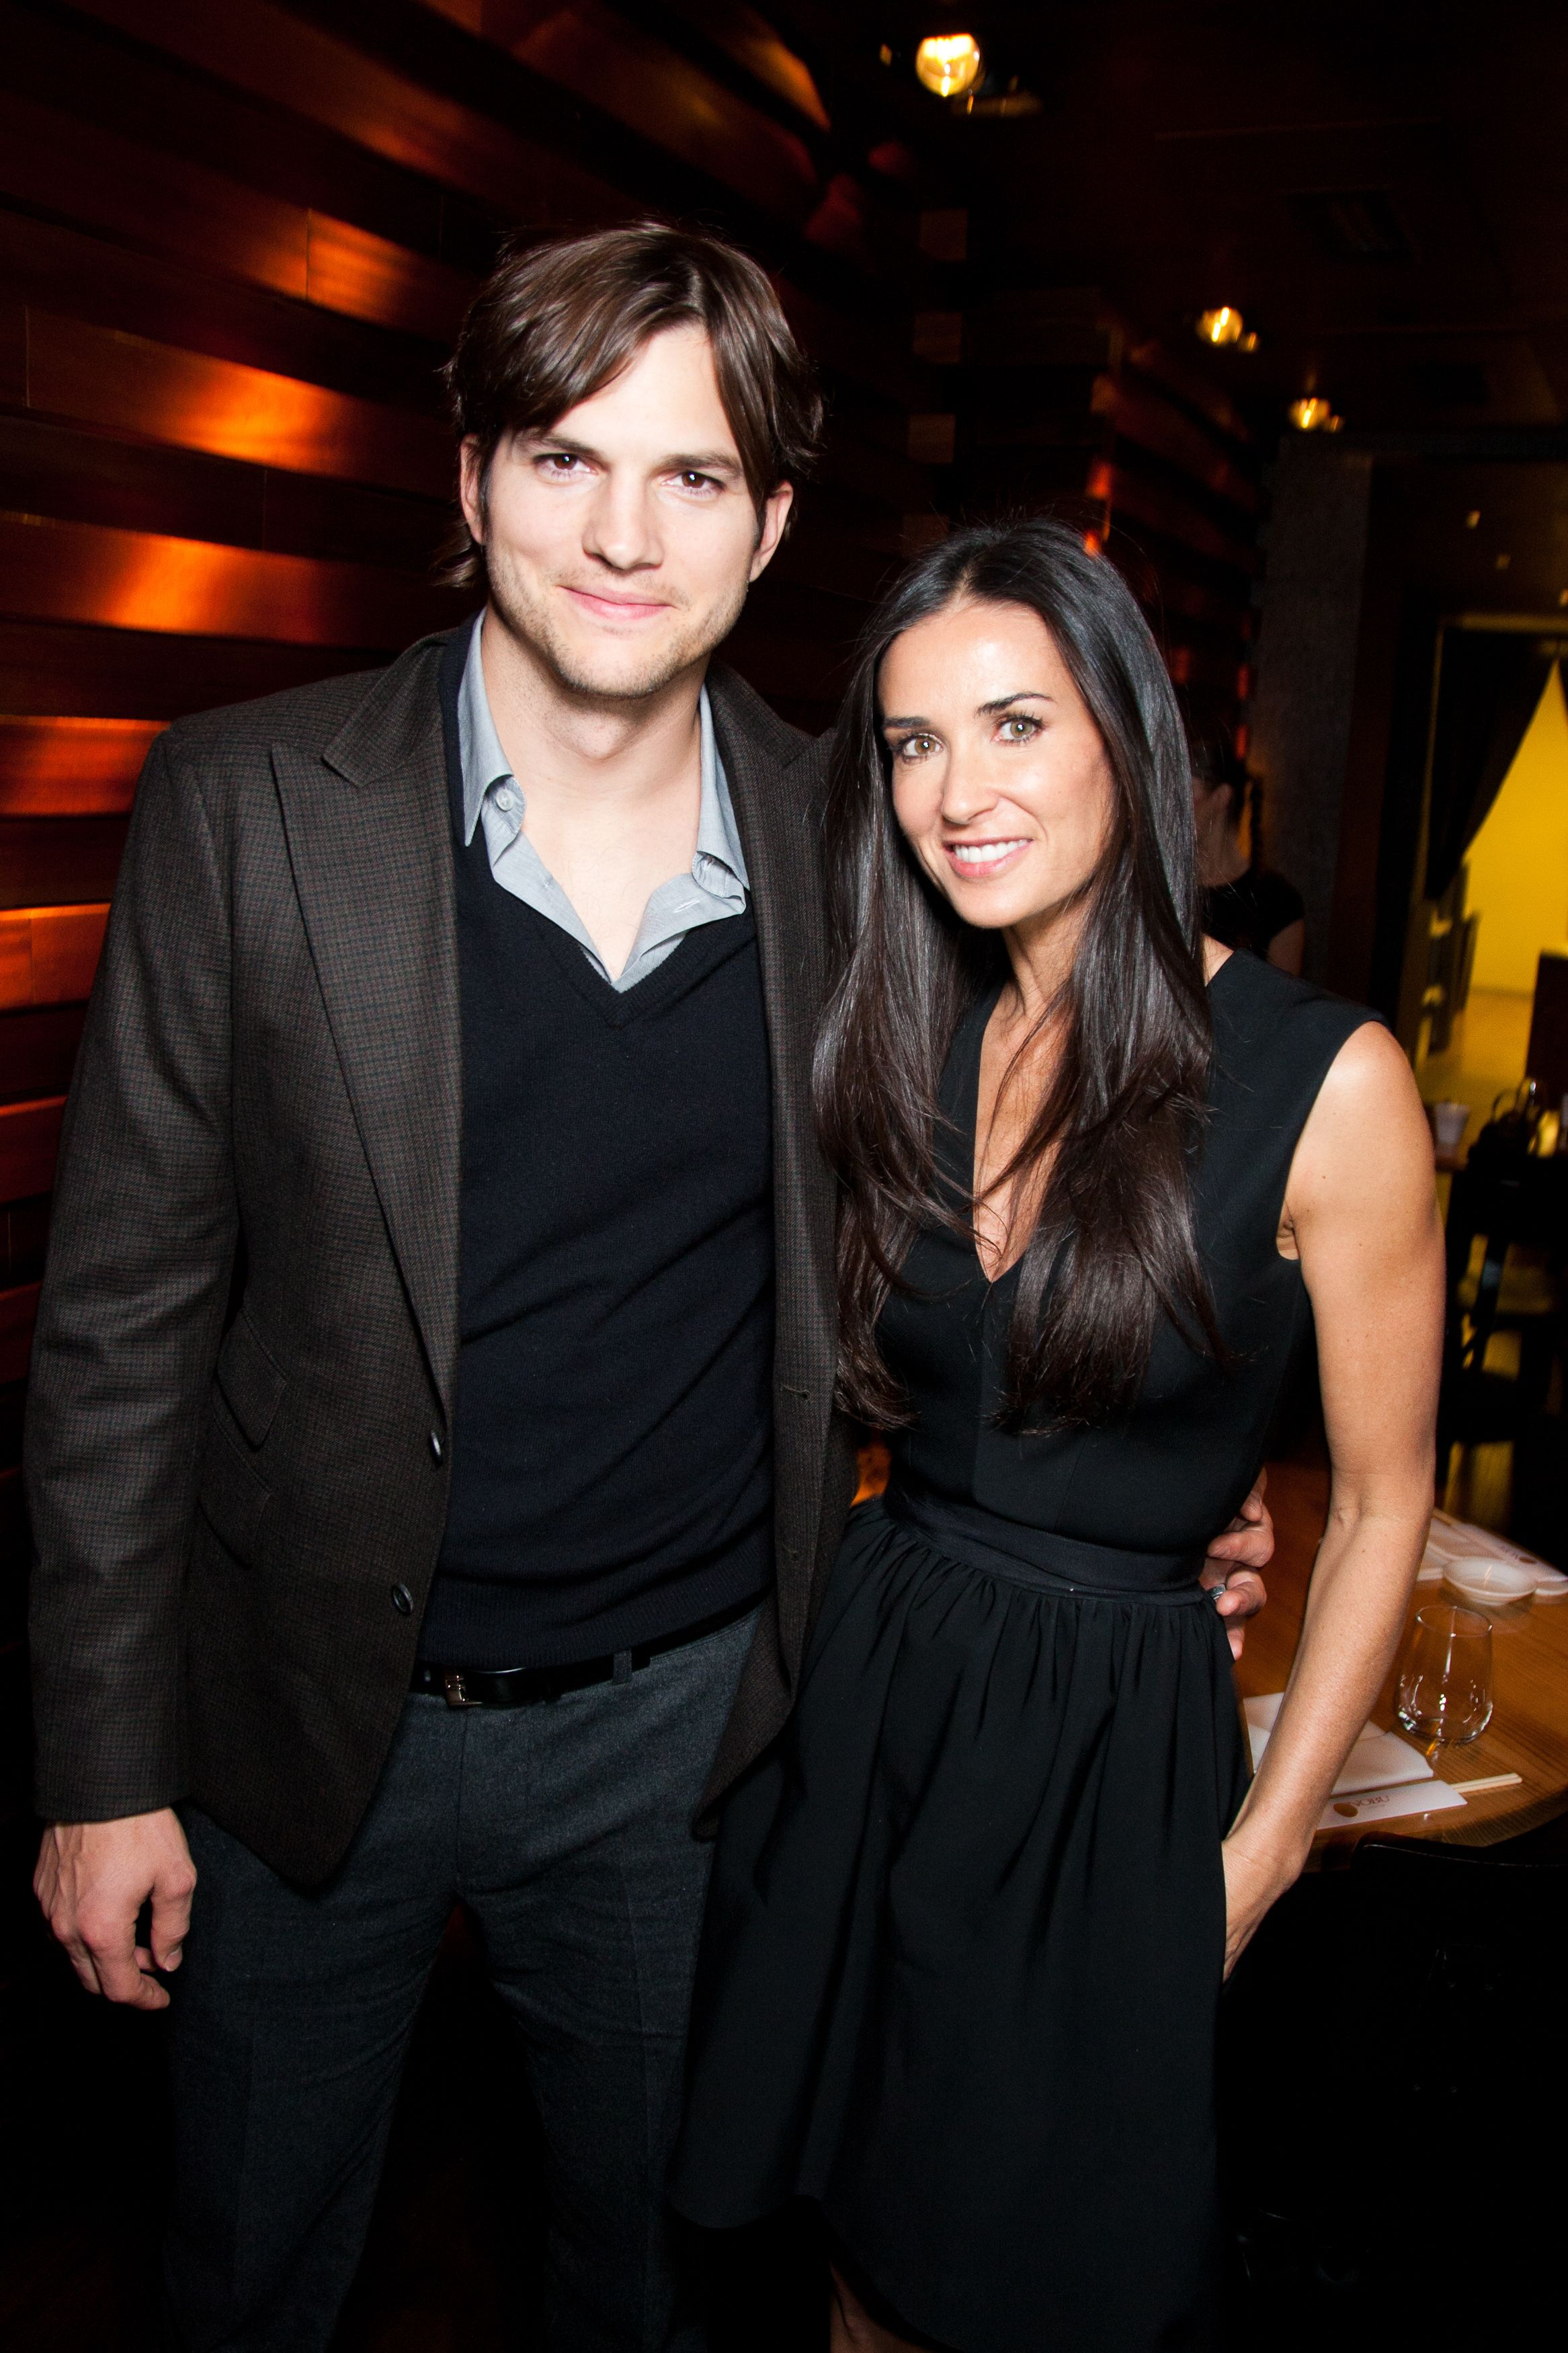 All You Need to Know About the Drama Between Exes Demi Moore and Ashton Kutcher